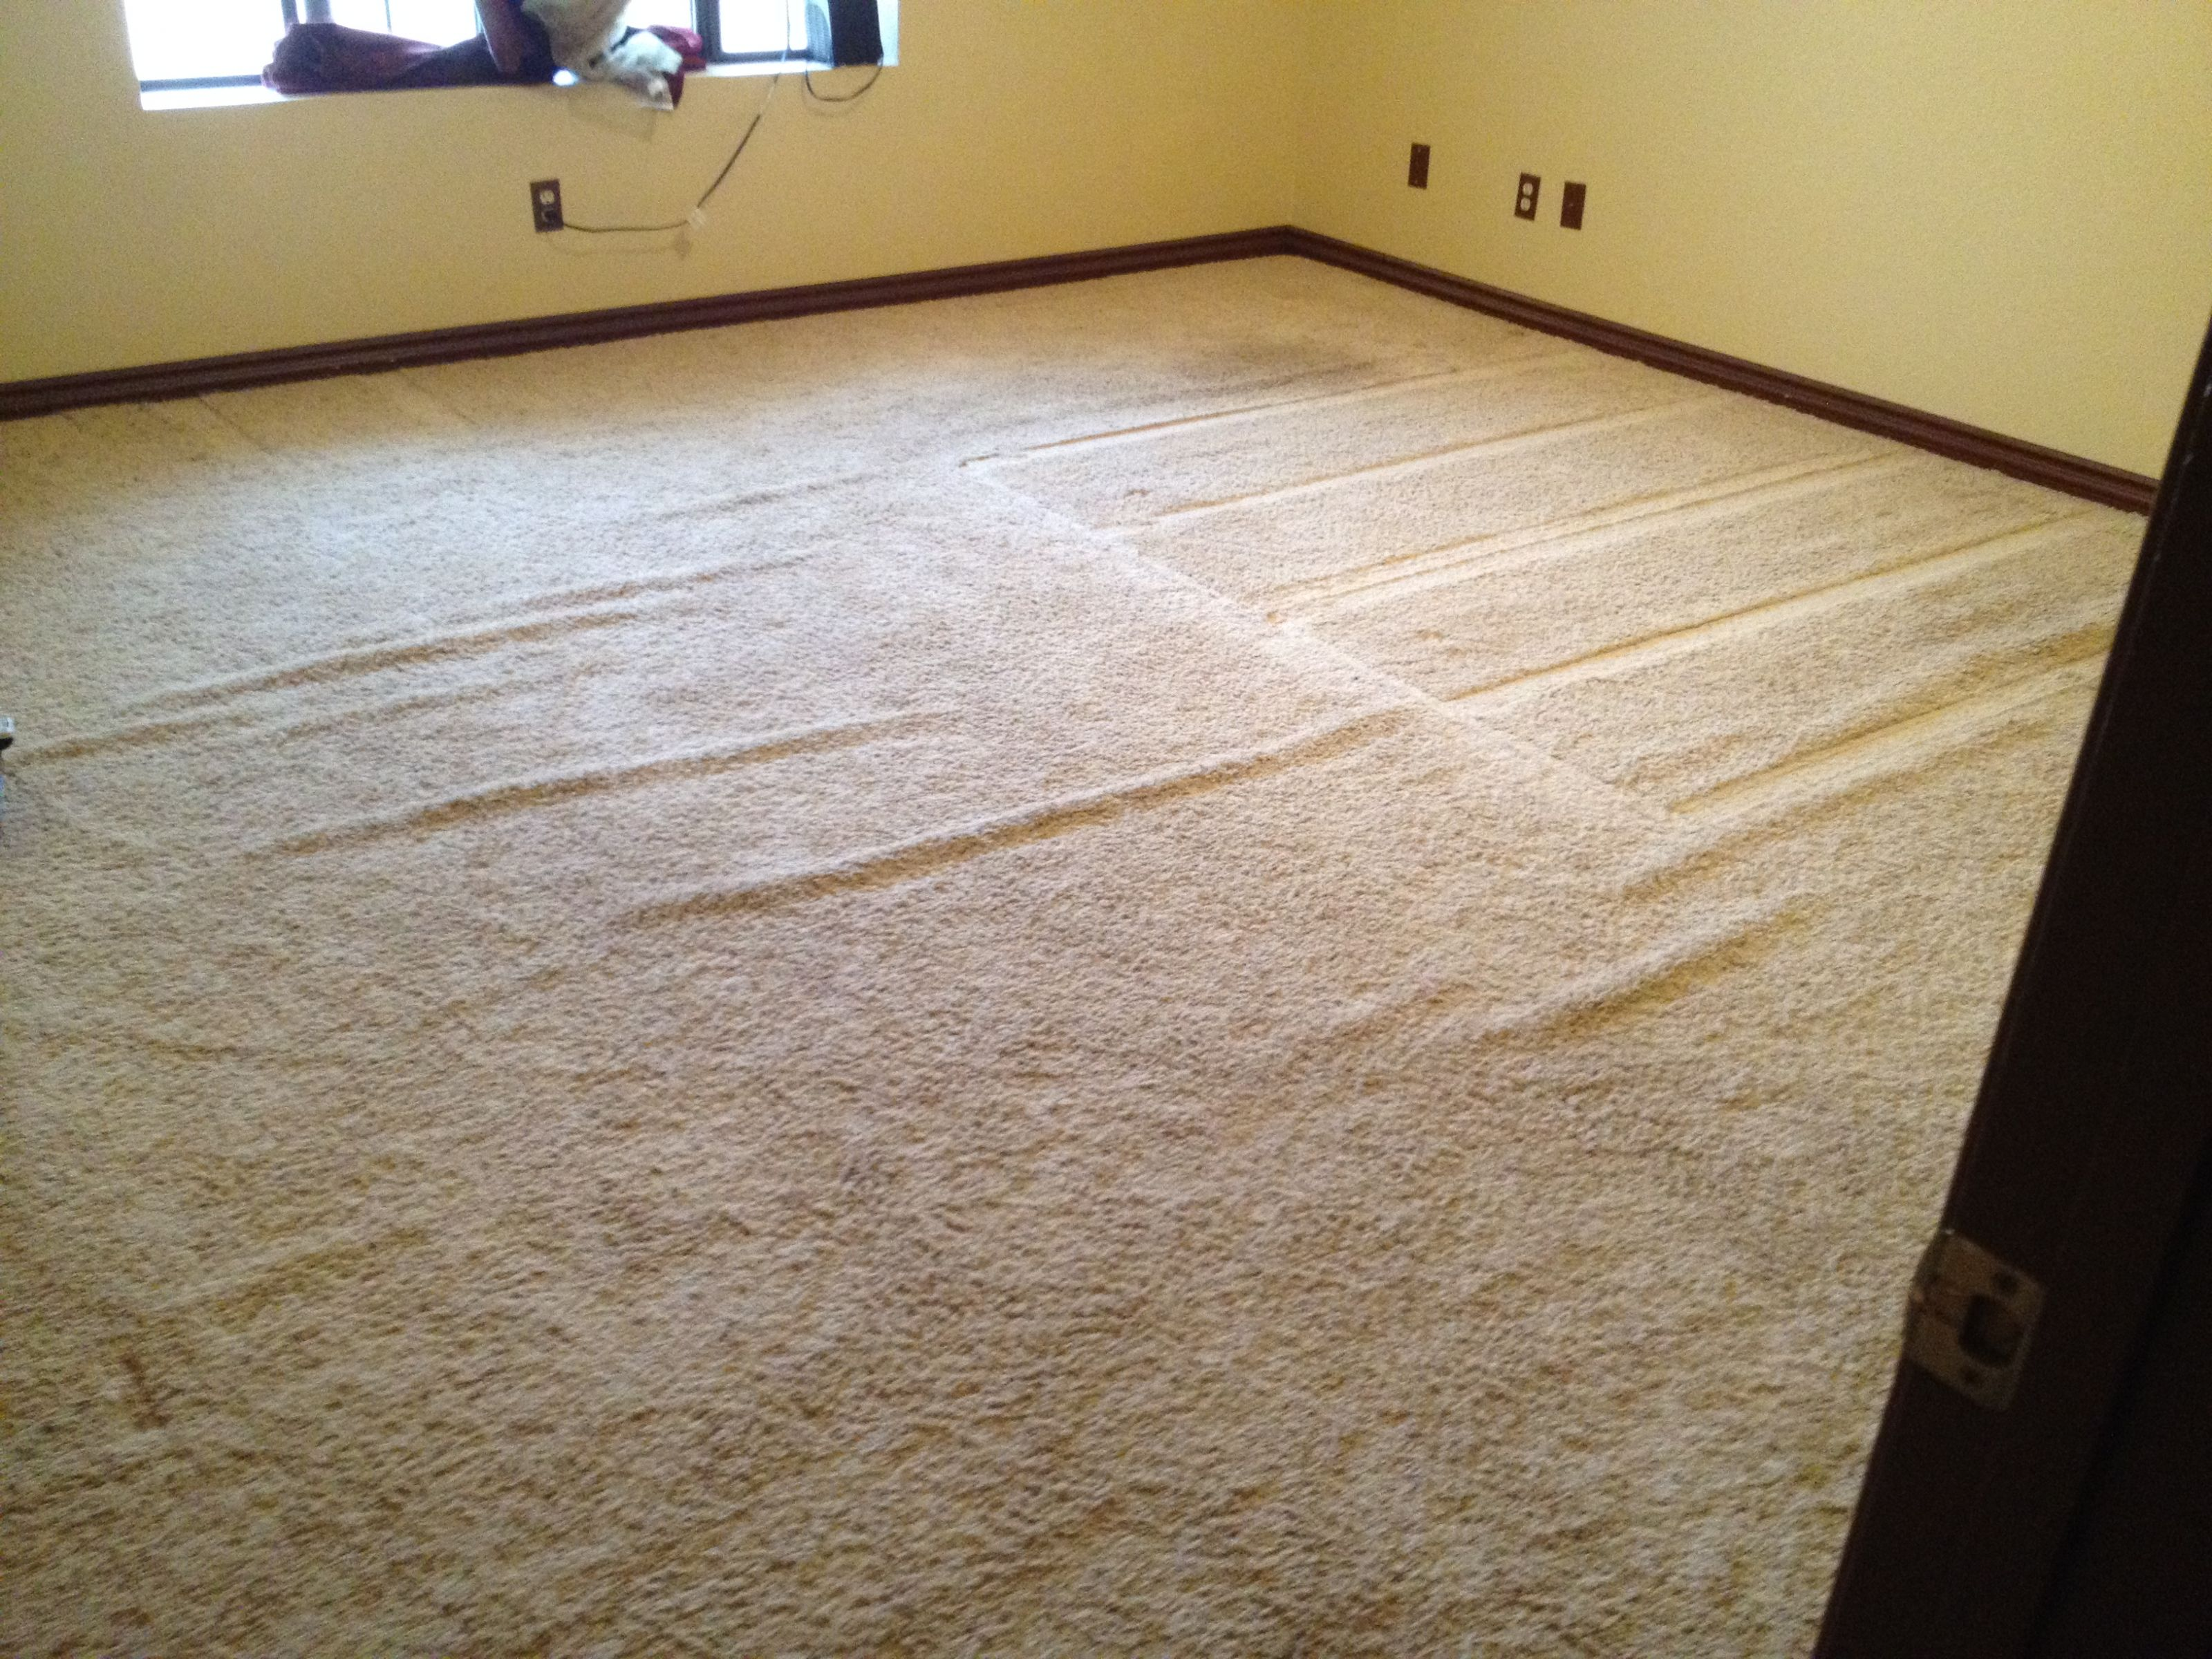 Your Carpet And Then We Work Diligently To Get You The Results That Want Never Cut Corners Re So Confident In Our Guarantee